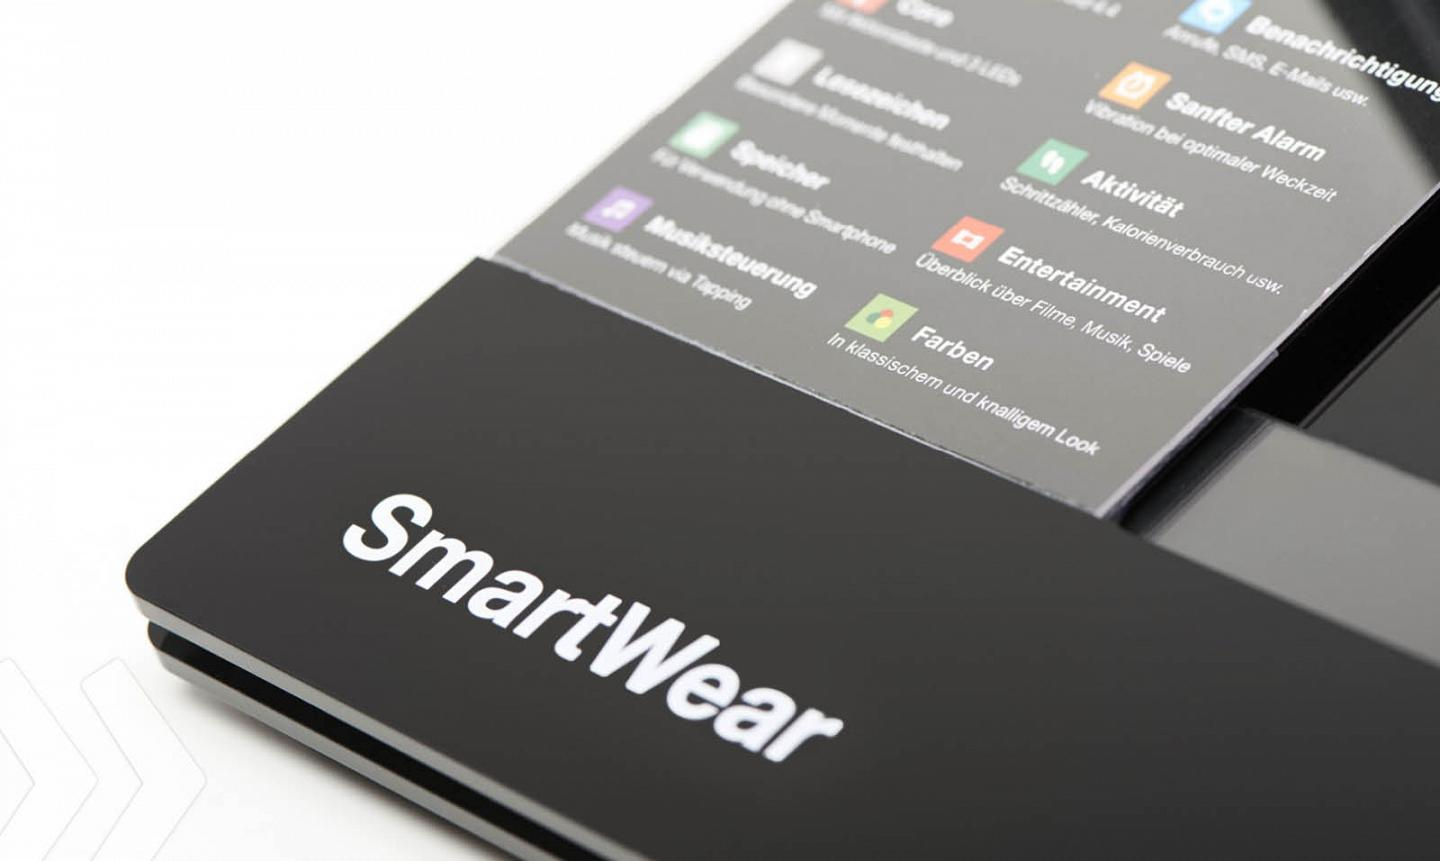 Sony Smart Wear Detail Logo